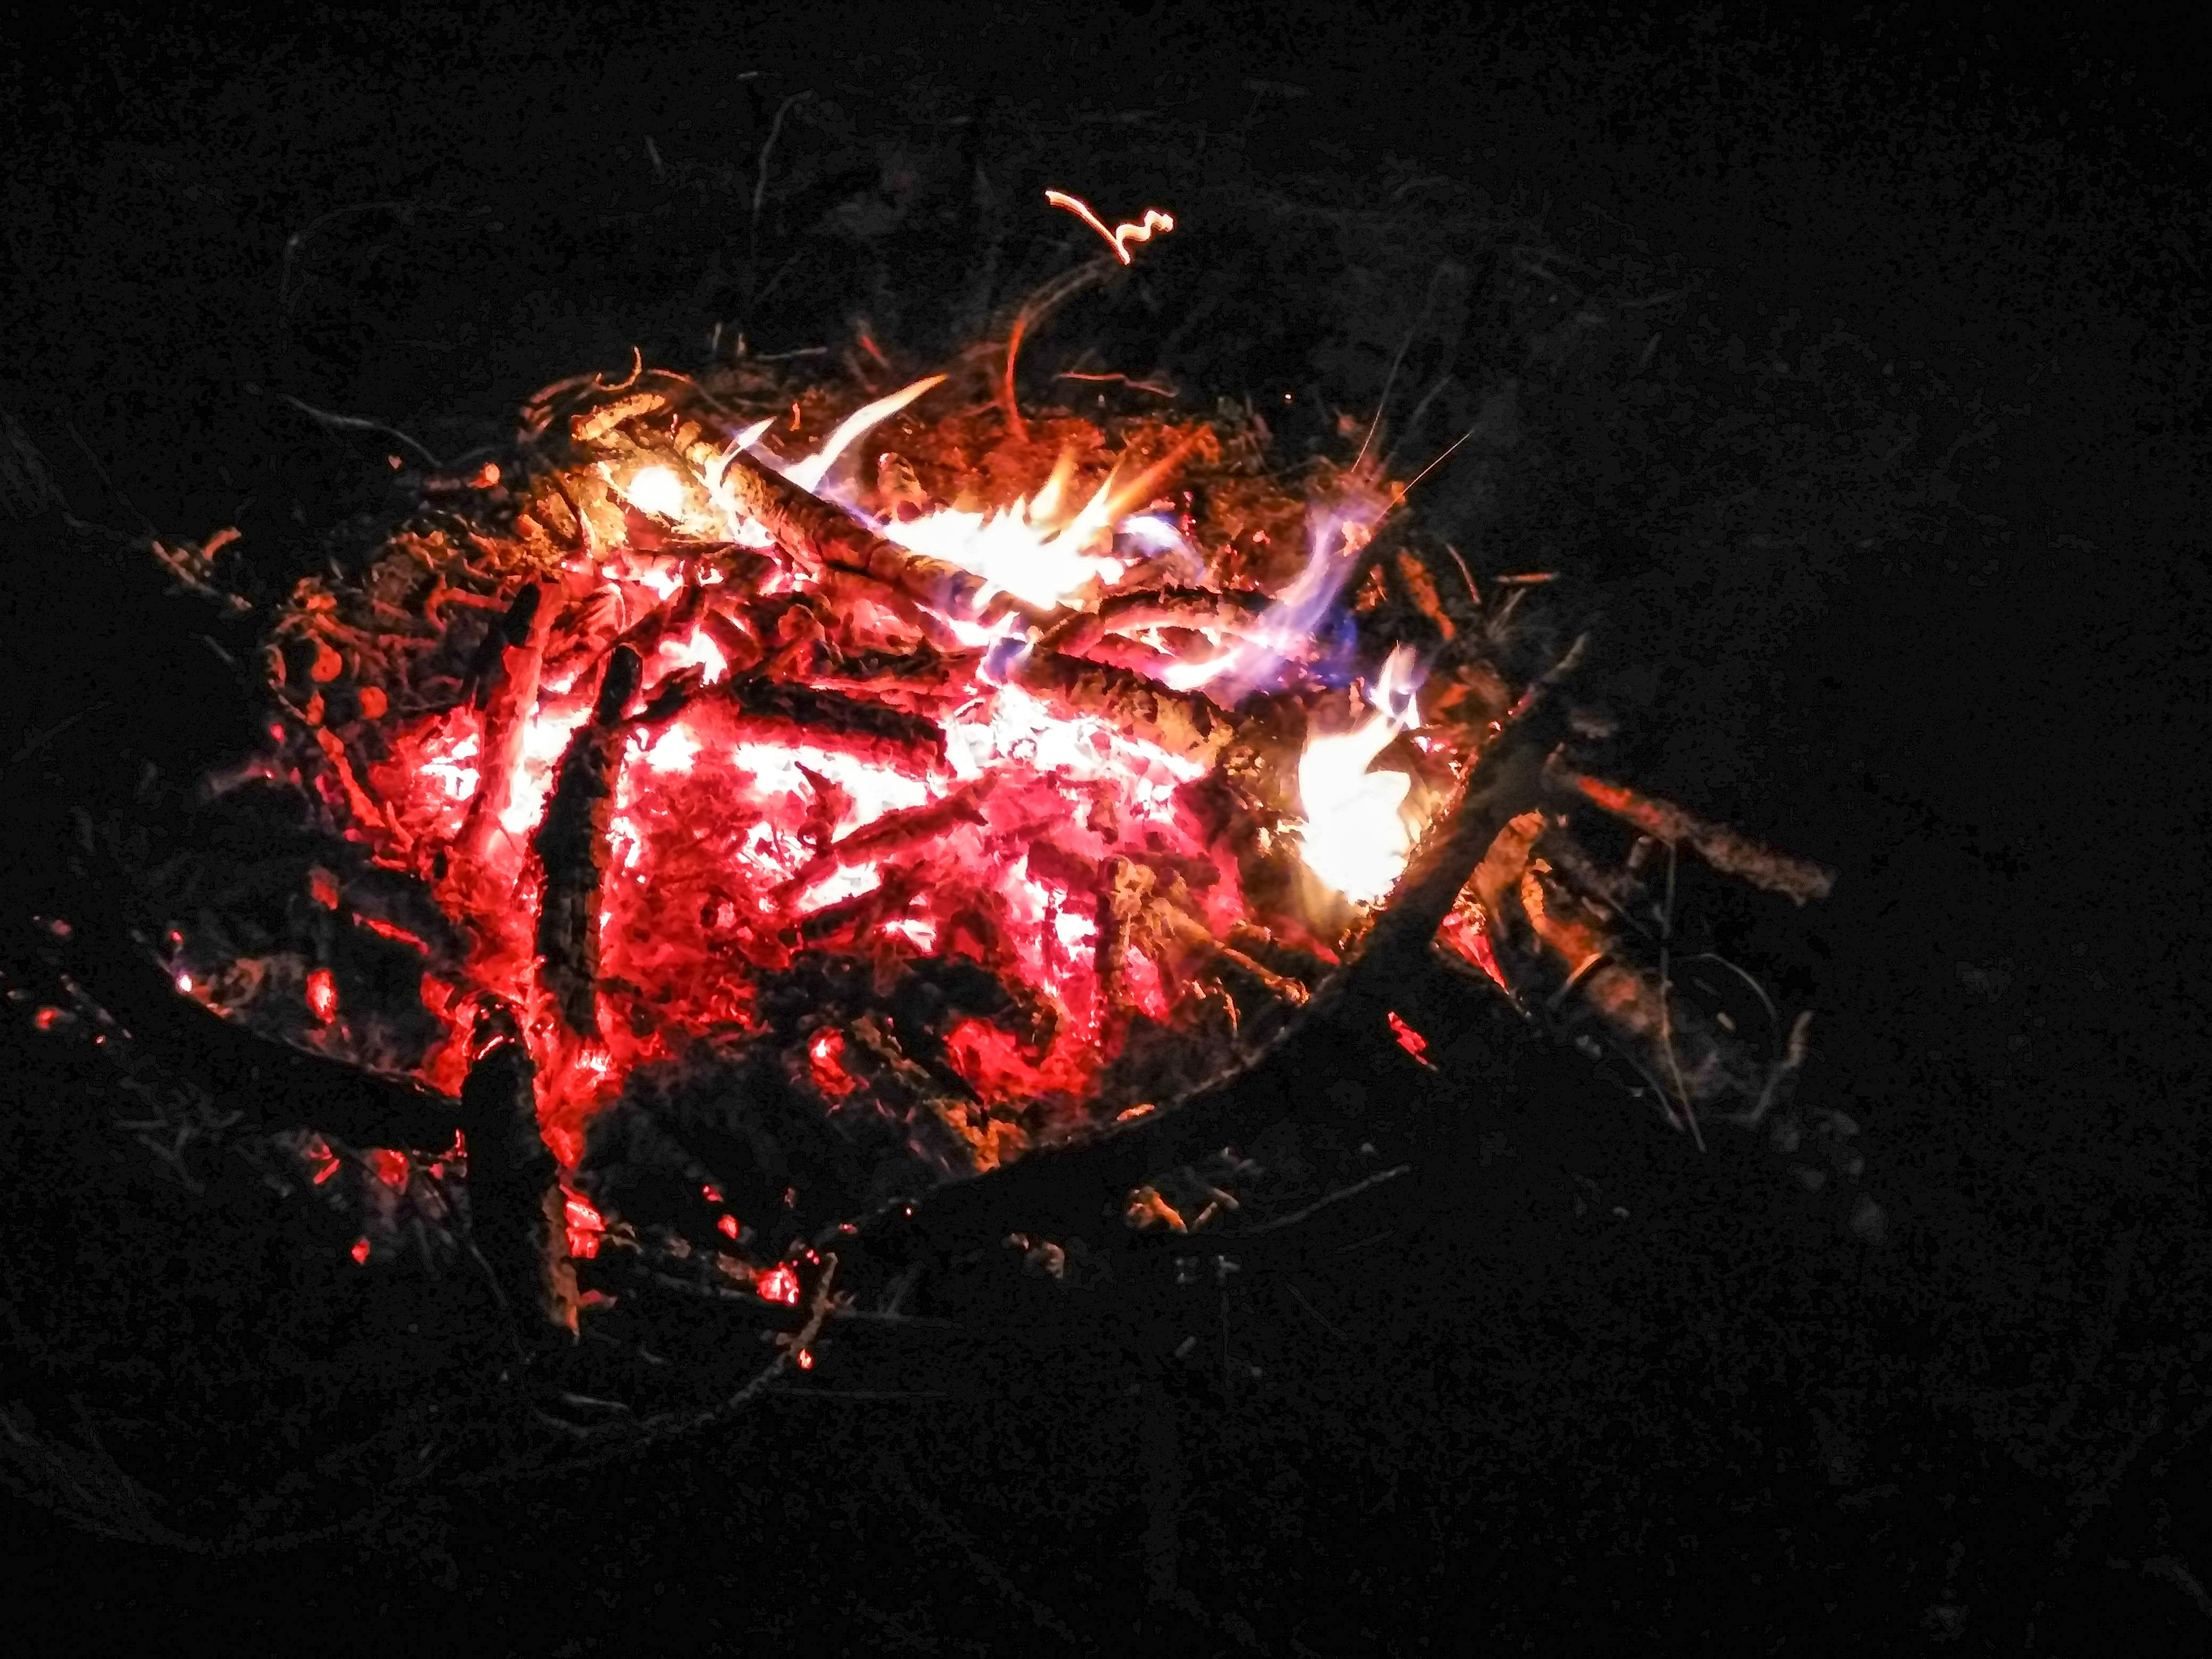 Free stock photo of bonfire, campfire, camping, darkness